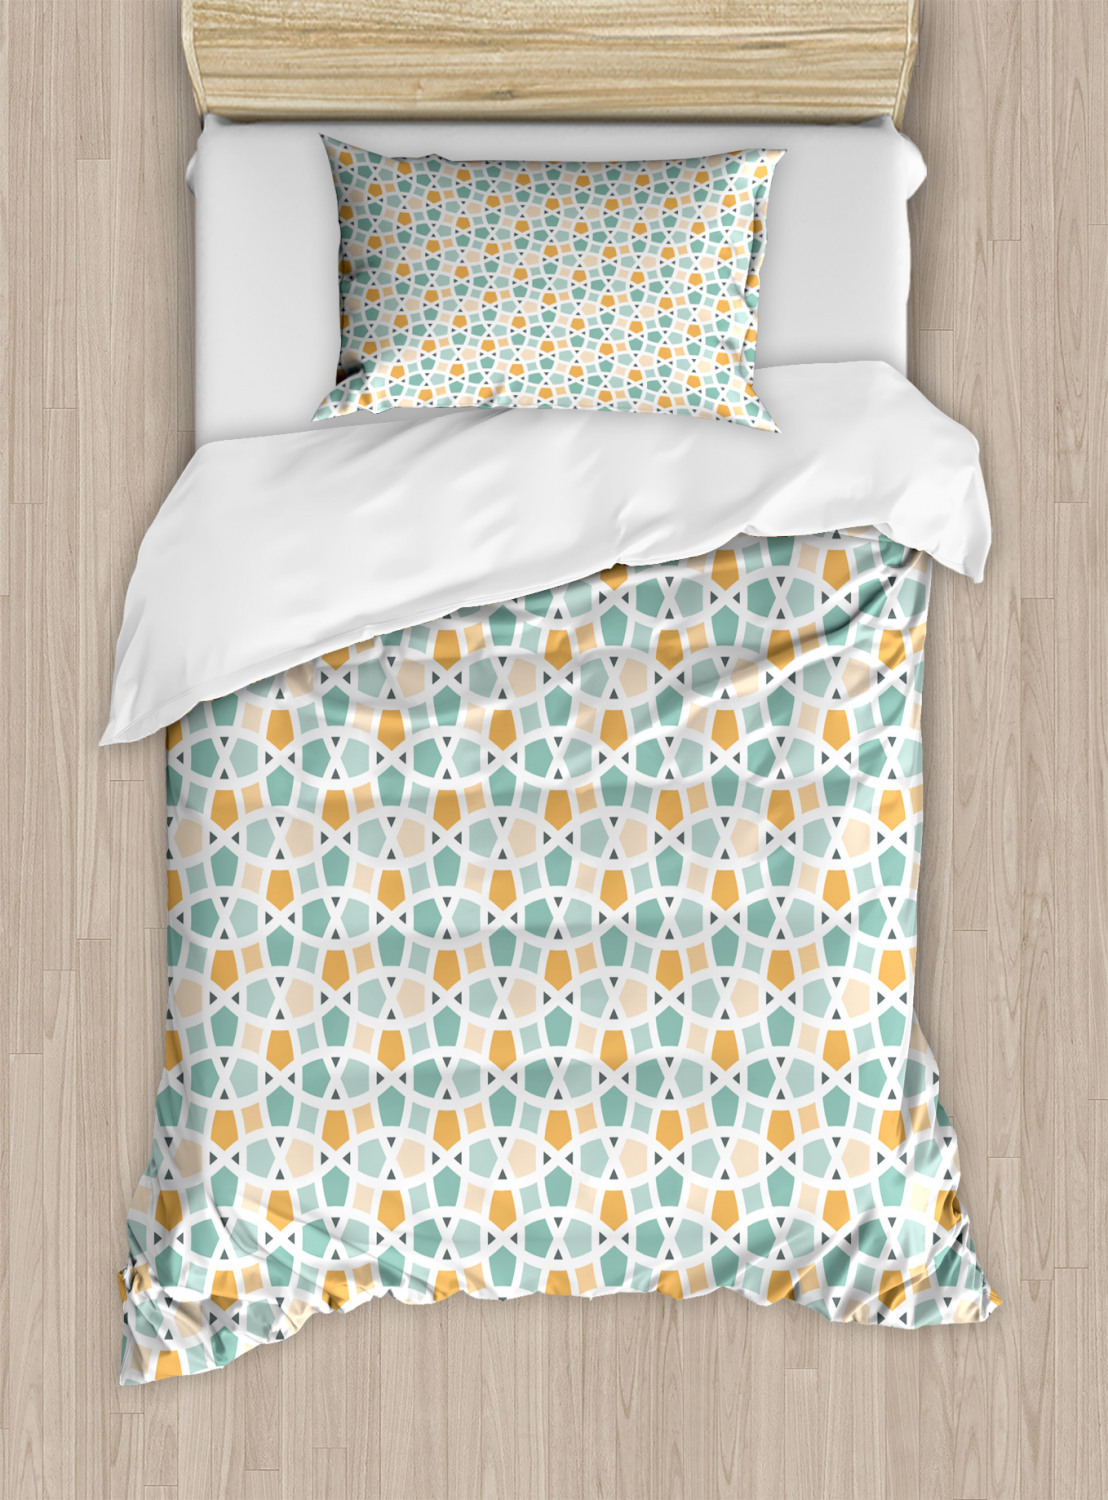 Teal-and-White-Duvet-Cover-Set-Twin-Queen-King-Sizes-with-Pillow-Shams-Ambesonne thumbnail 14